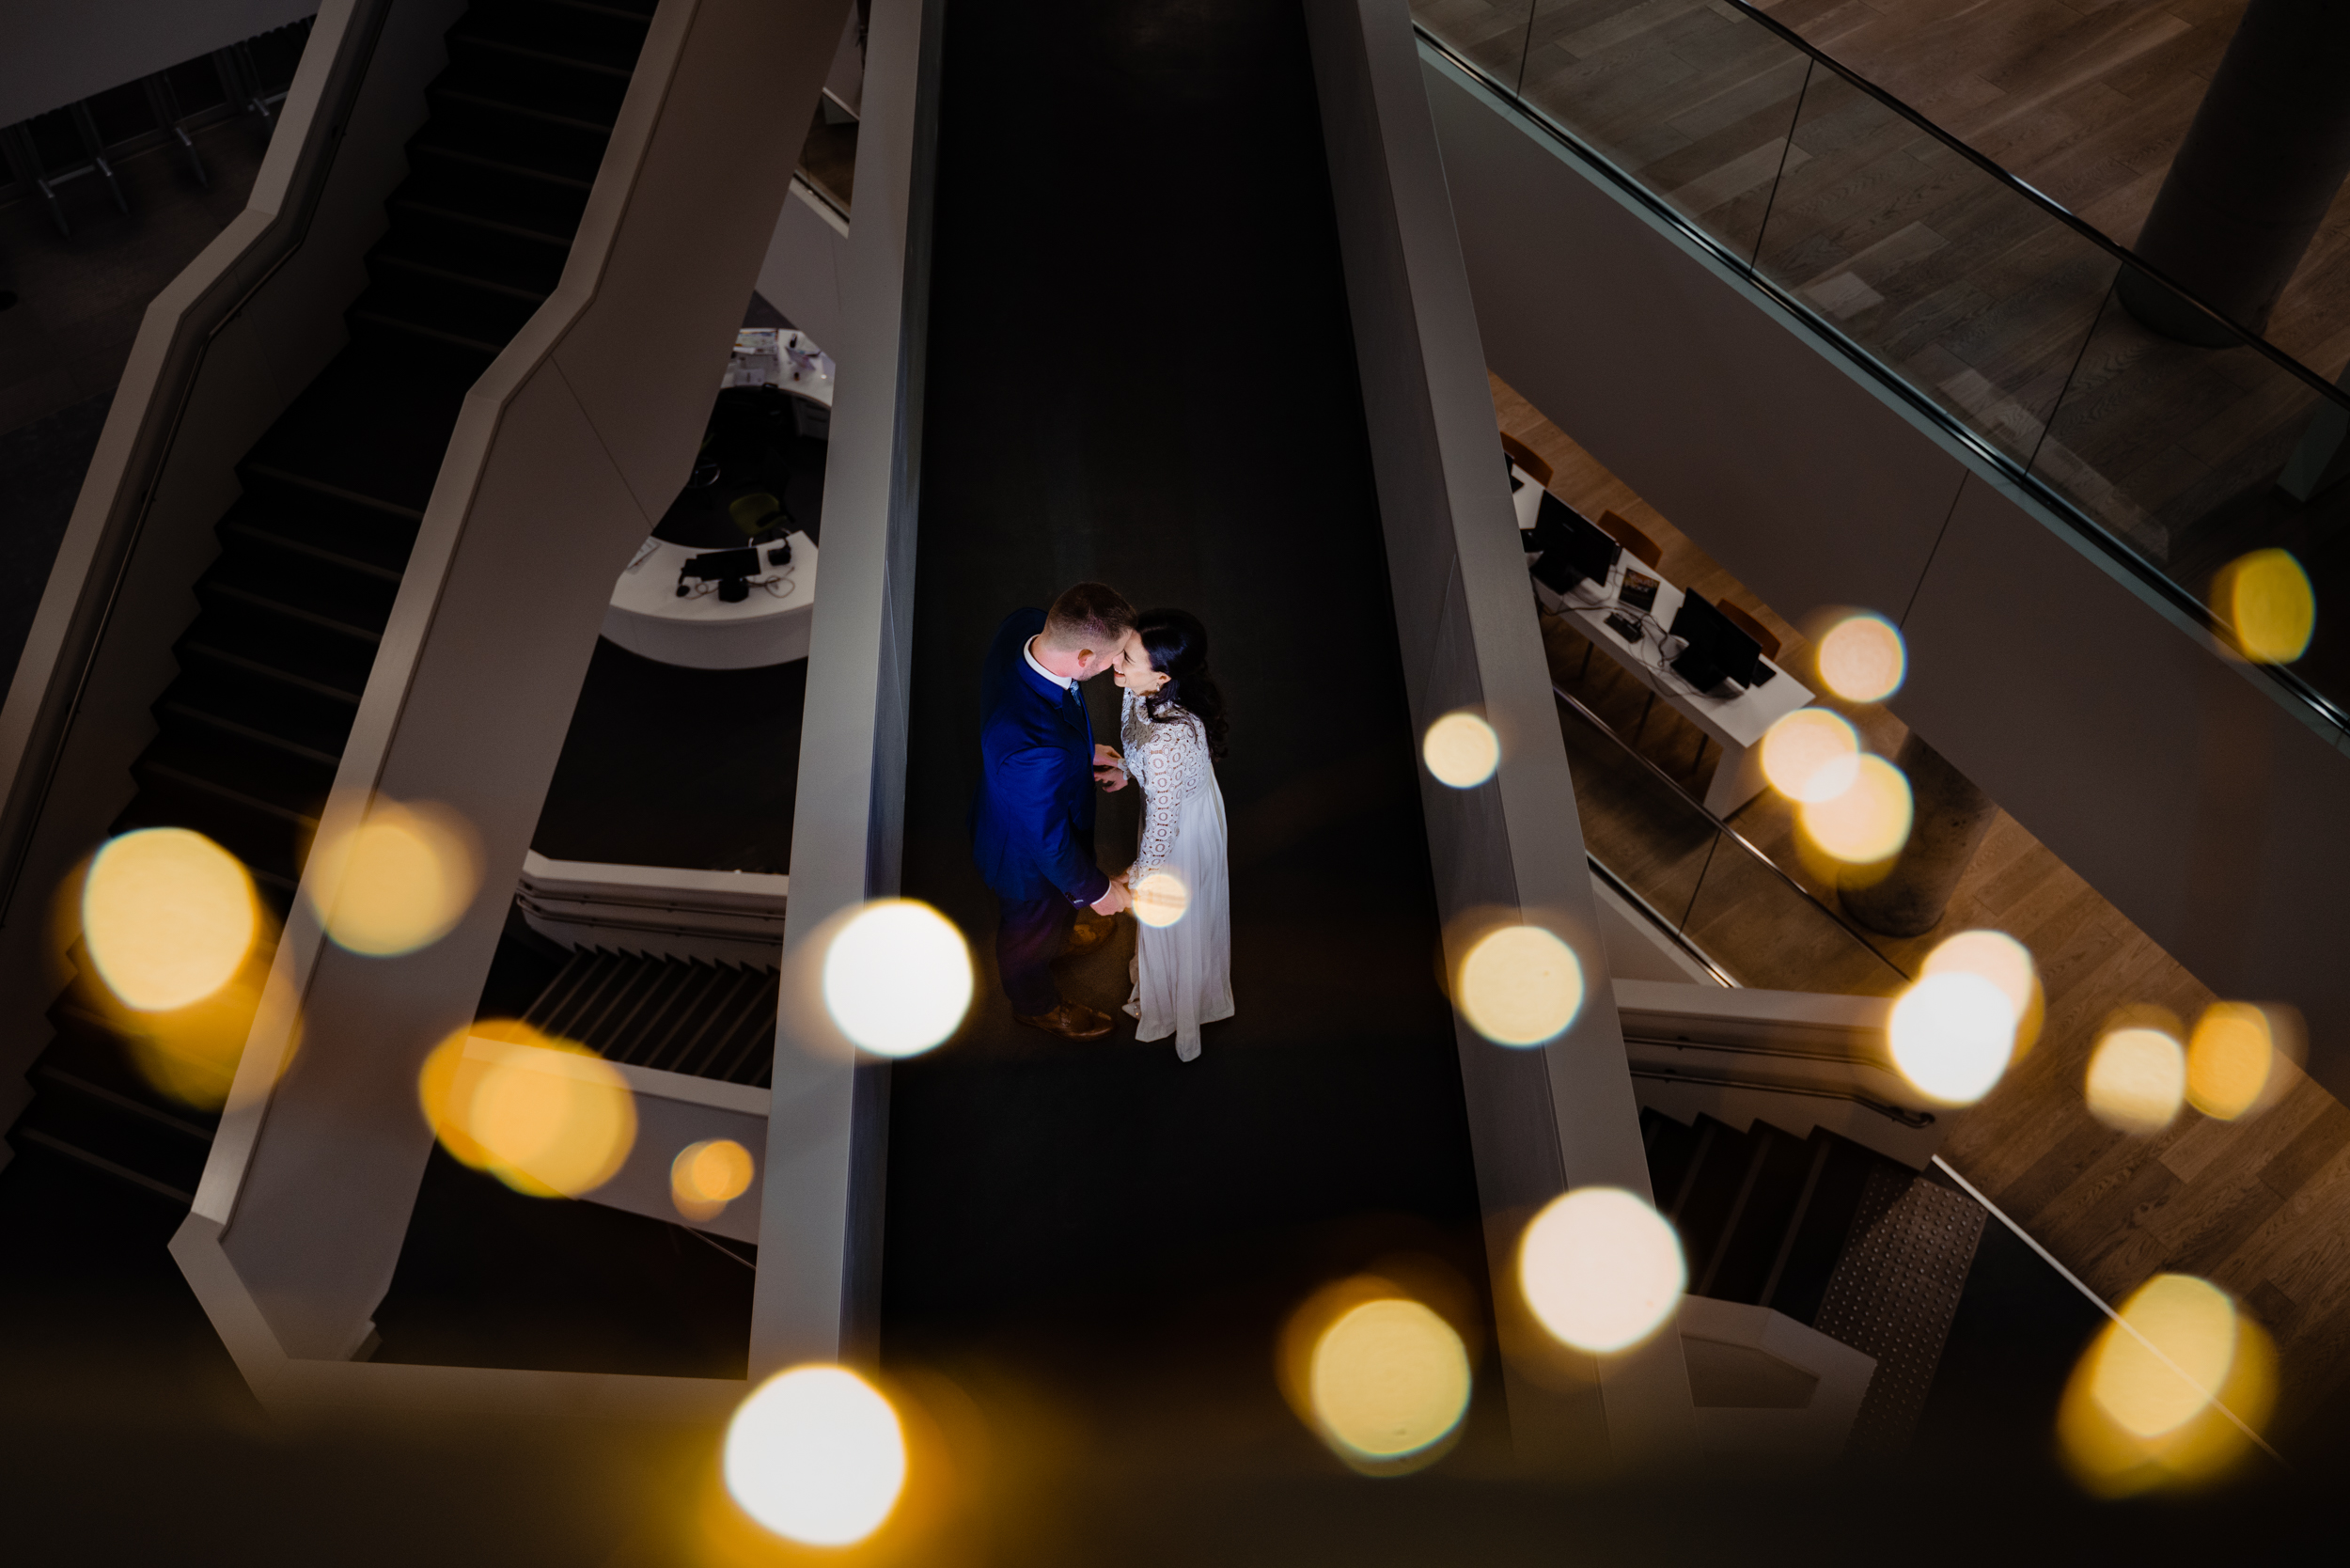 HalifaxPublicLibrary-Halifax-wedding-venue-novascotia-ottawa-ontario (39 of 52).jpg